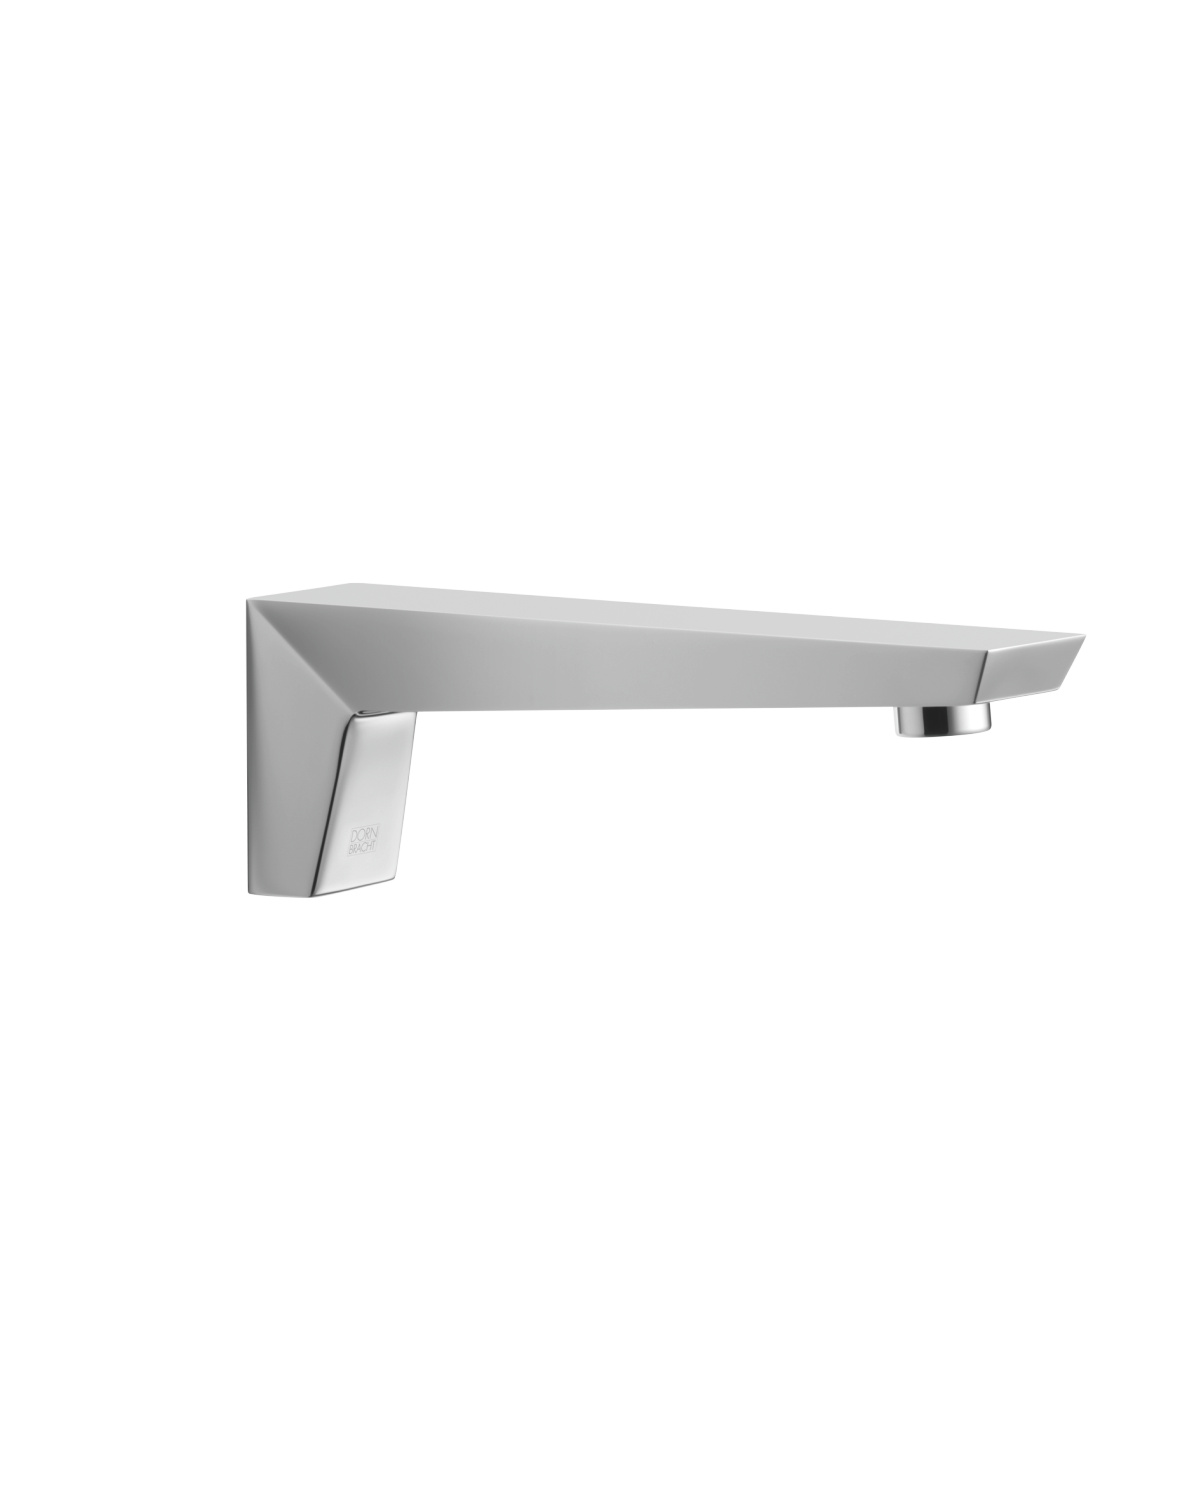 bath spout for wall mounting - Champagne